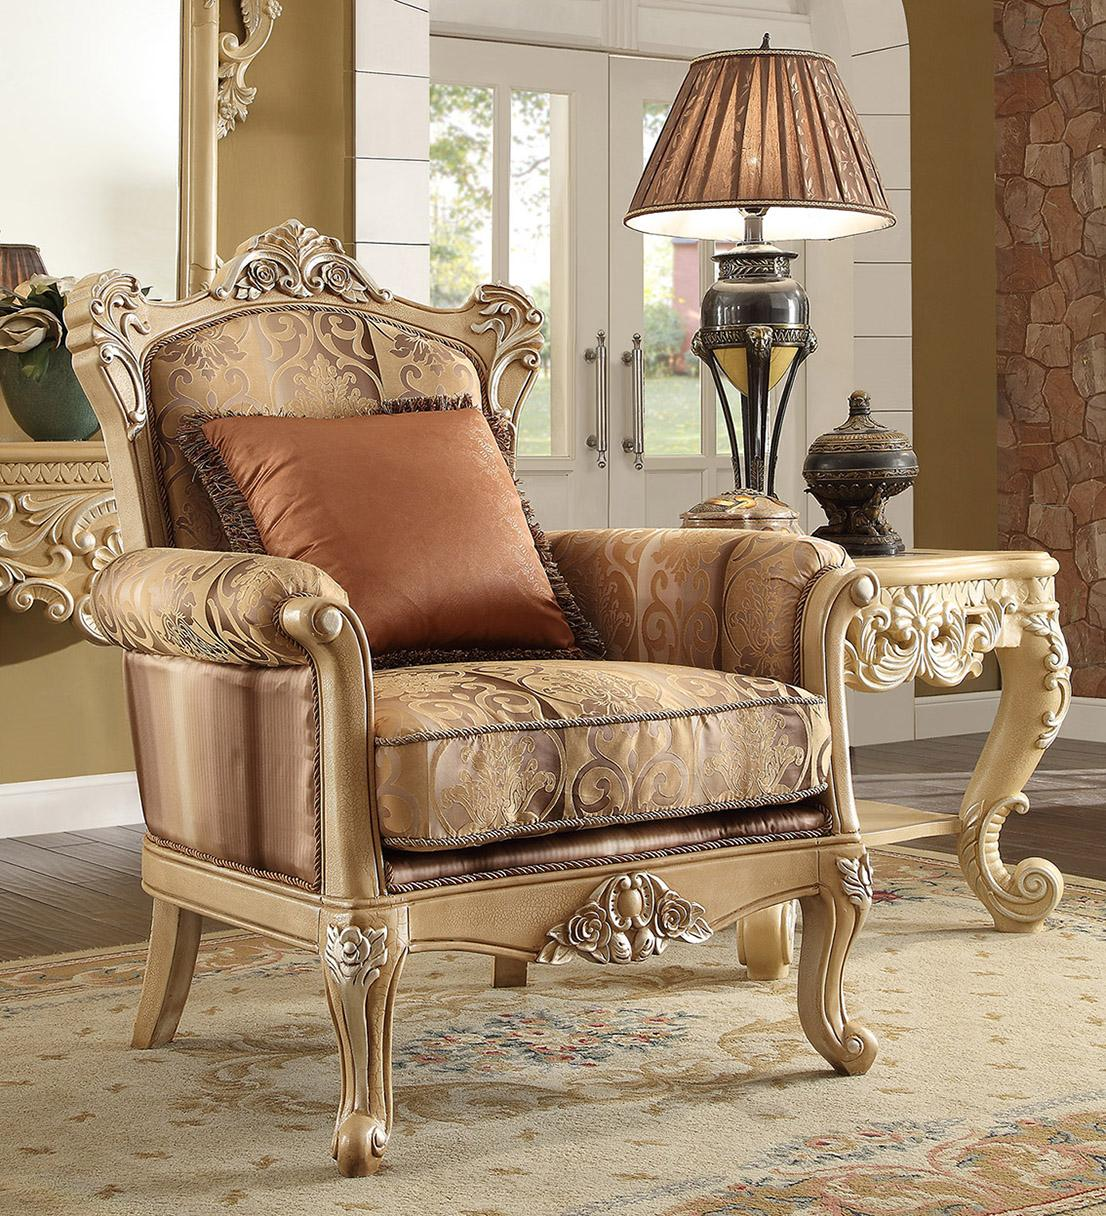 Traditional Victorian Antique HD-1633 Chair in Gold by Homey Design